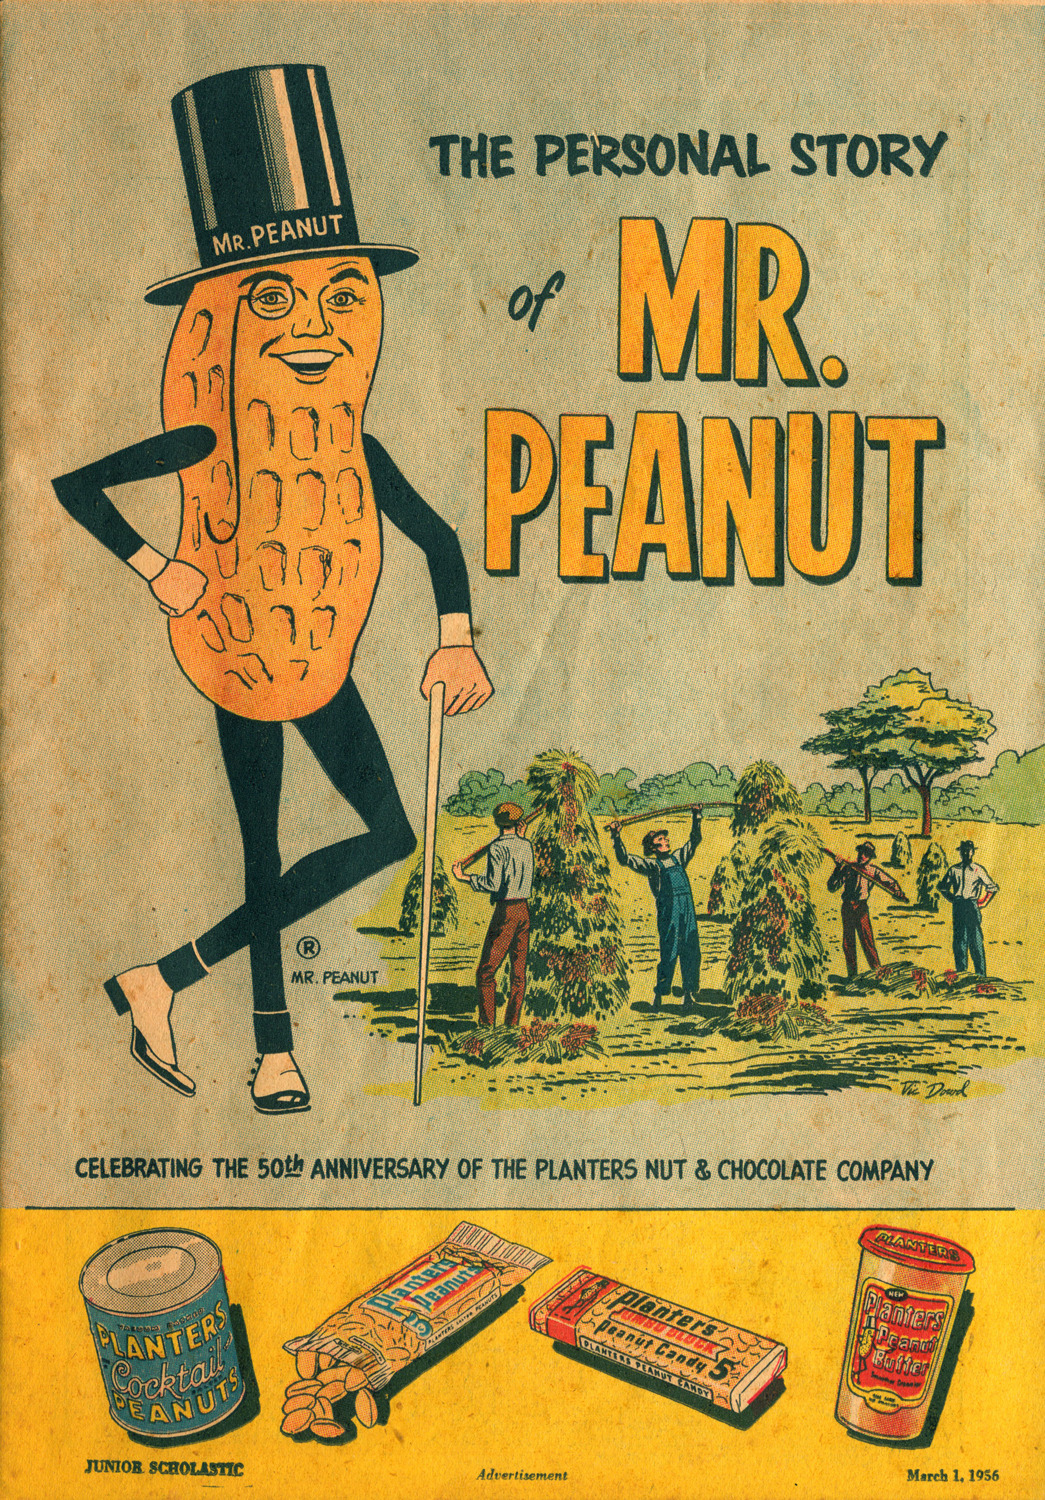 Planters Nut and Chocolate Company - 'The Personal Story of Mr. Peanut' - published in Junior Scholastic - March 1, 1956